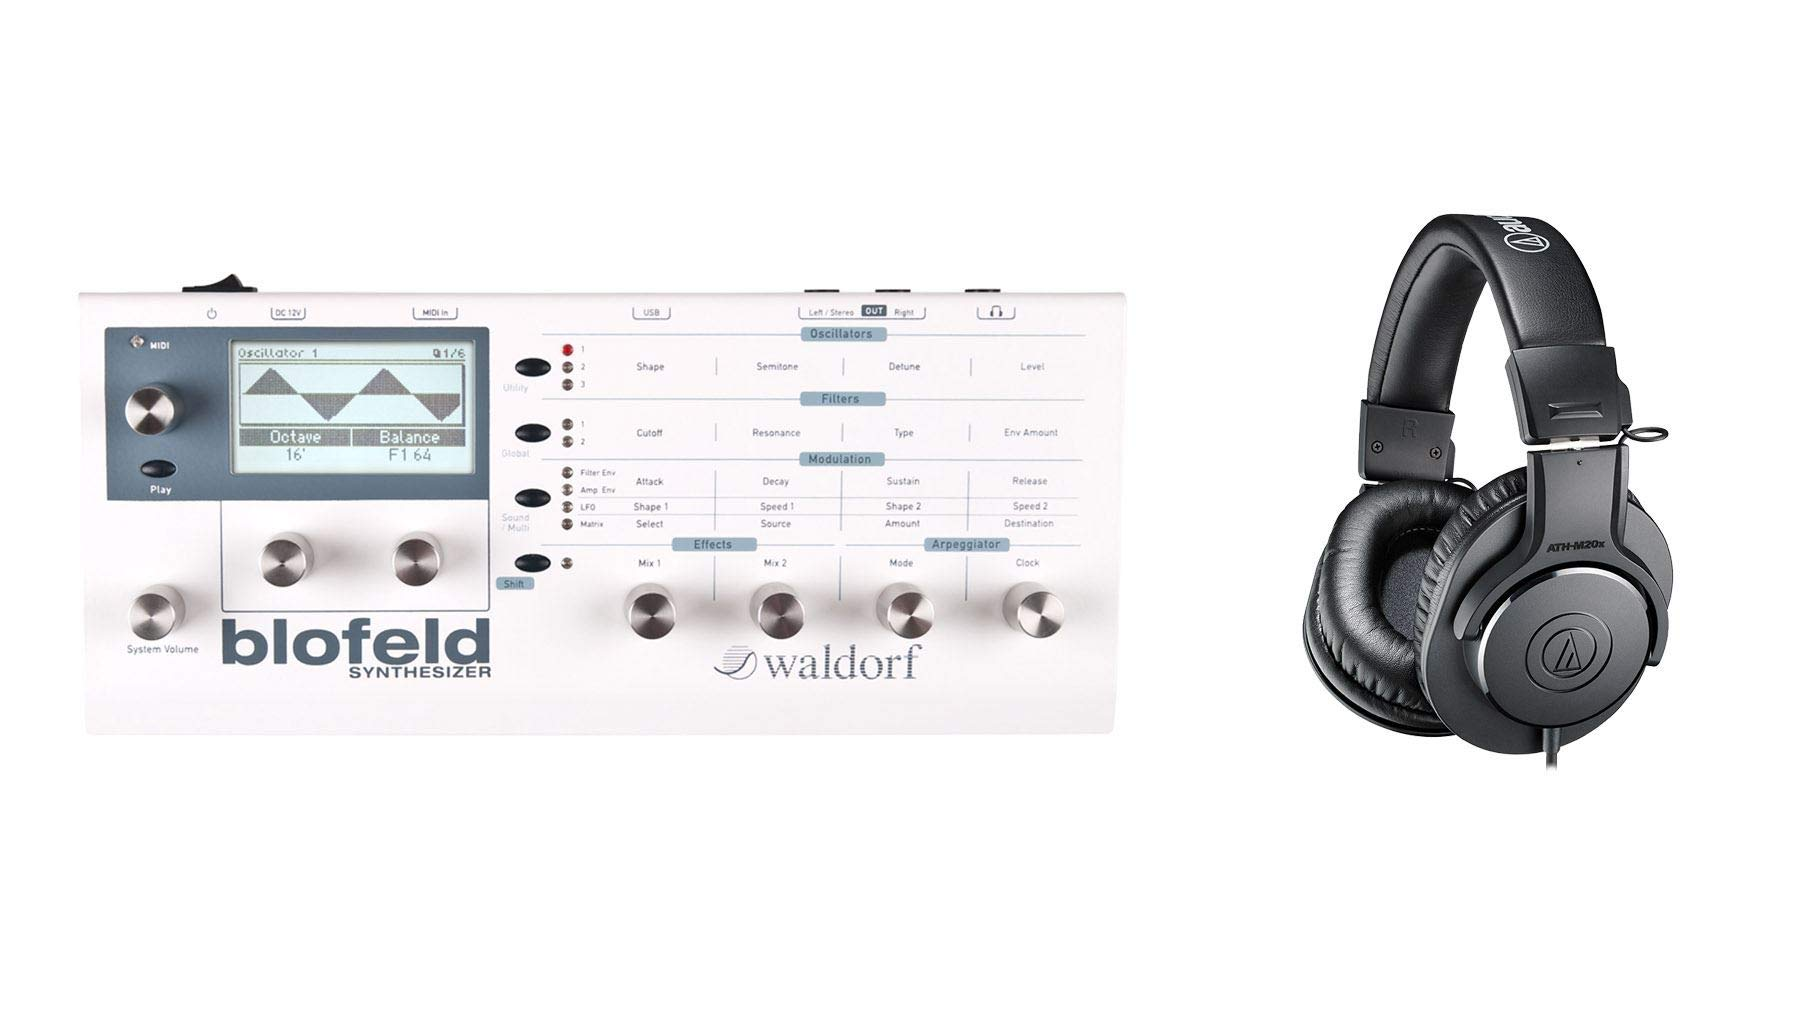 Waldorf White Blofeld Synthesizer Desktop Module Bundle with Audio-Technica ATH-M20x Headphones (2 Items)